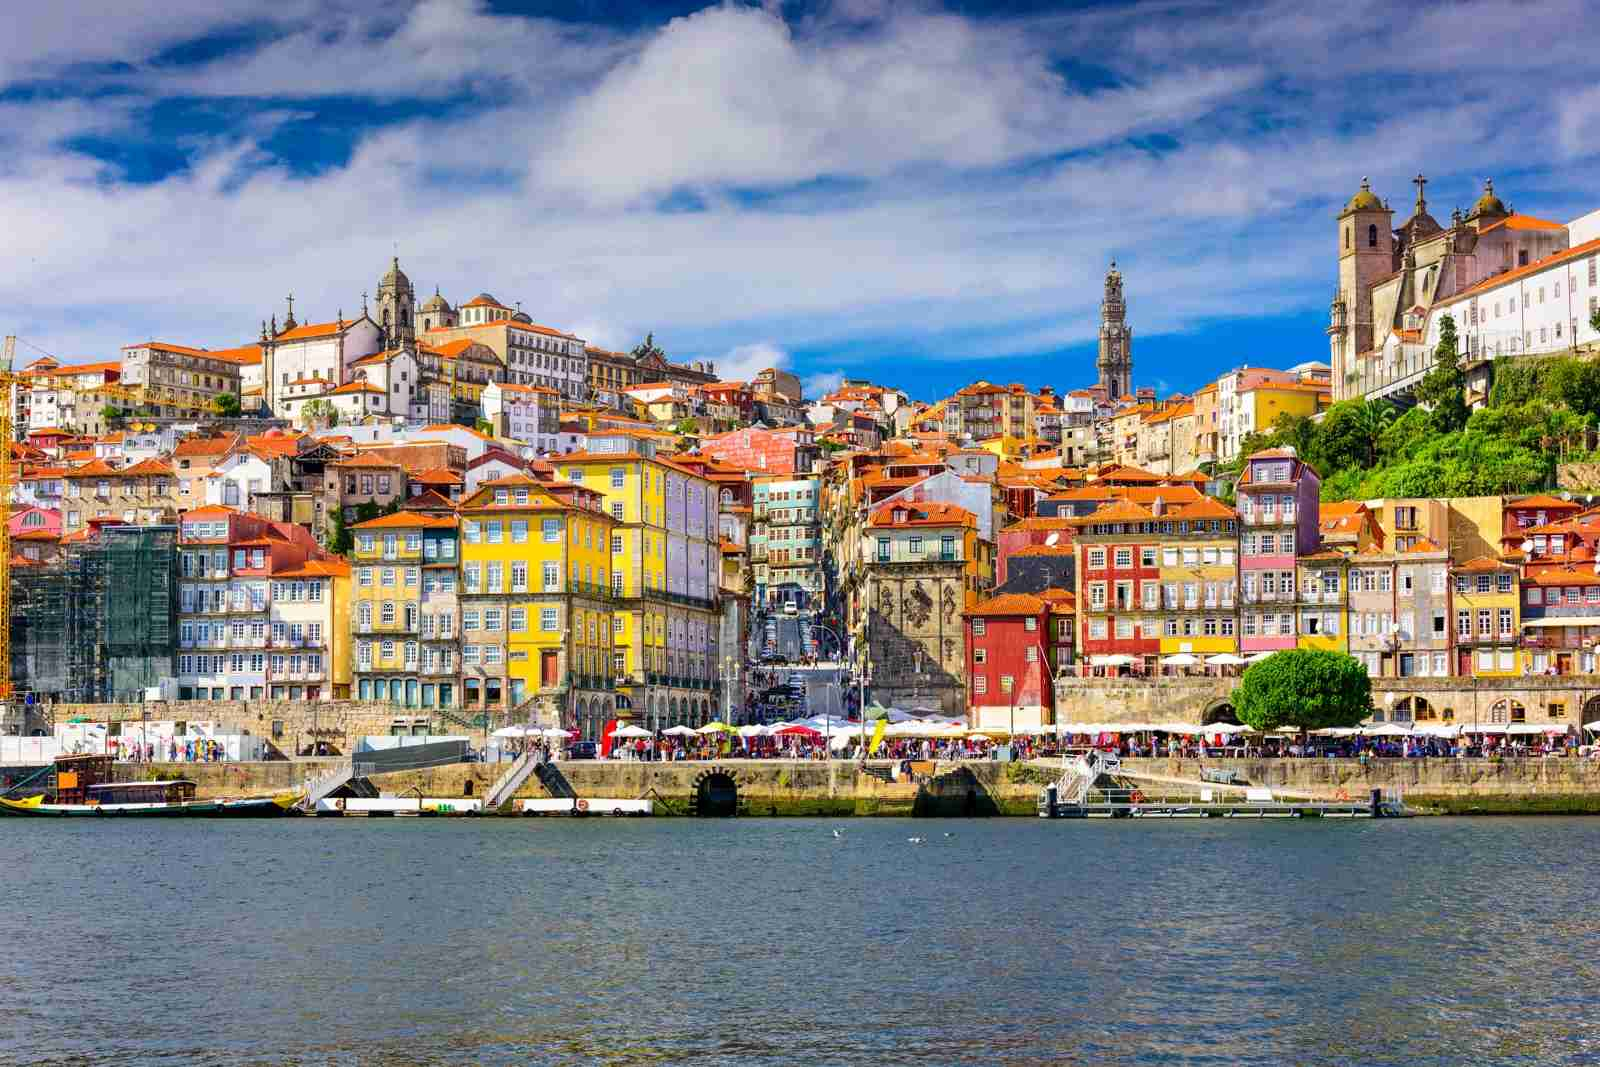 Porto, Portugal skyline from across the Douro River. (Photo by ESB Professional / Shutterstock)